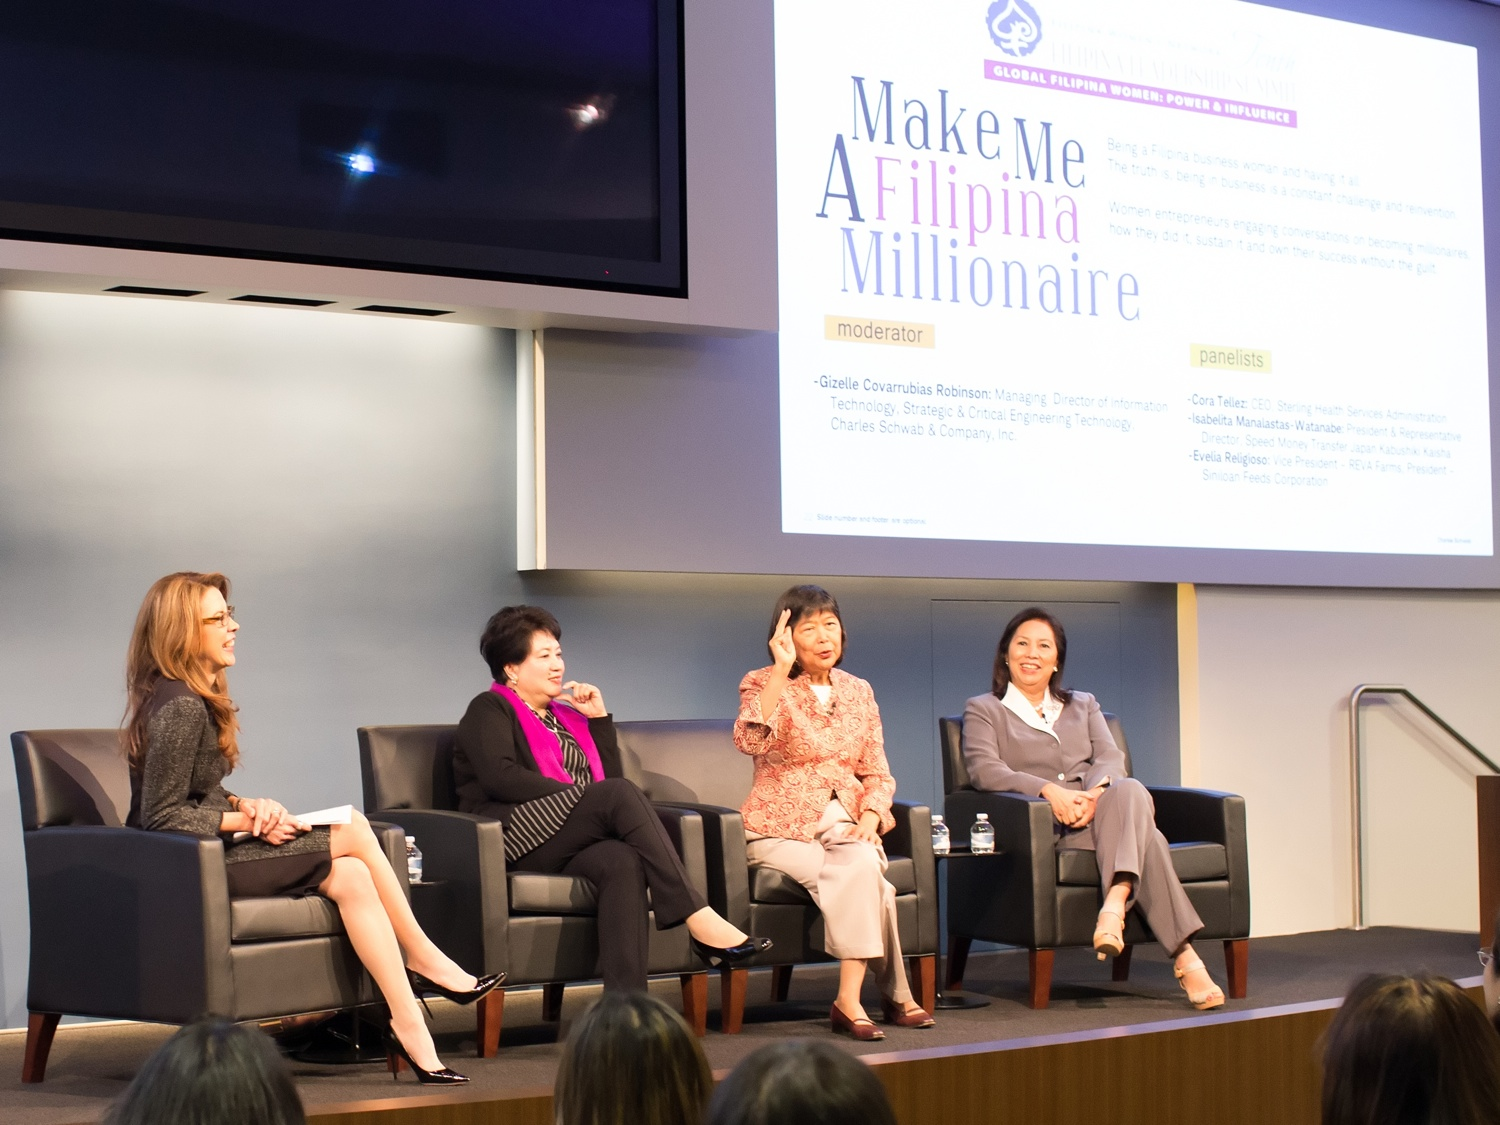 (L to R) Gizelle Covarrubias Robinson, IT Managing Director, Charles Schwab moderating the Make Me A Filipina Millionaire Panel with speakers Lita Manalastas Watanabe, President, Speed Money Transfer Japan Kabushiki Kaisha; Cora Tellez, President and CEO, Sterling HSA; Evelia V. Religioso, President, Siniloan Feeds Corporation; Owner & Vice President, REVA Farms; Director, Rural Bank of Mabitac Inc.; Chairman, Siniloan Water District